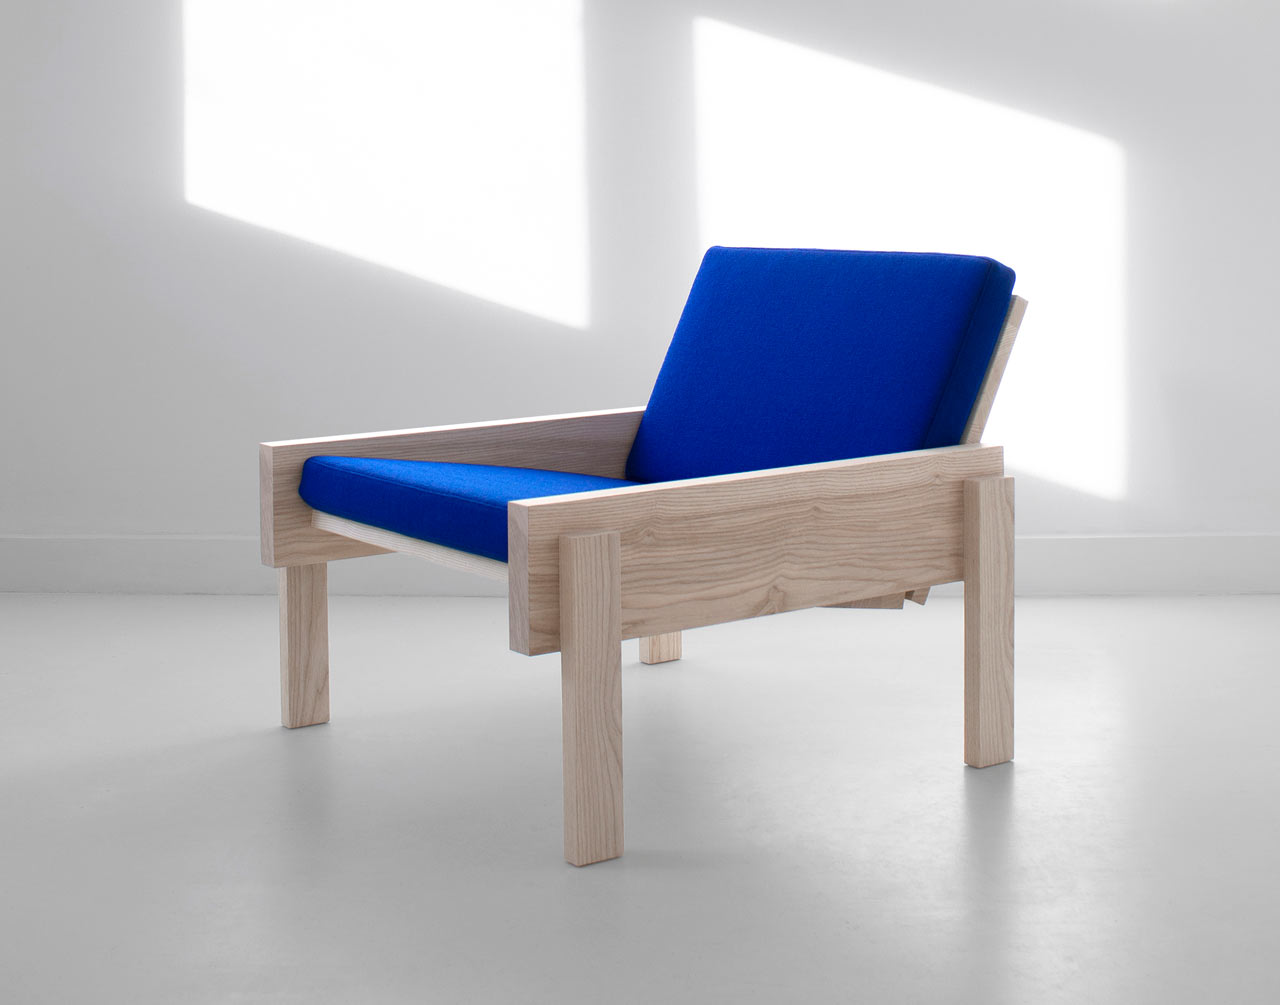 The Simple Solid Chair by Thijmen van der Steen